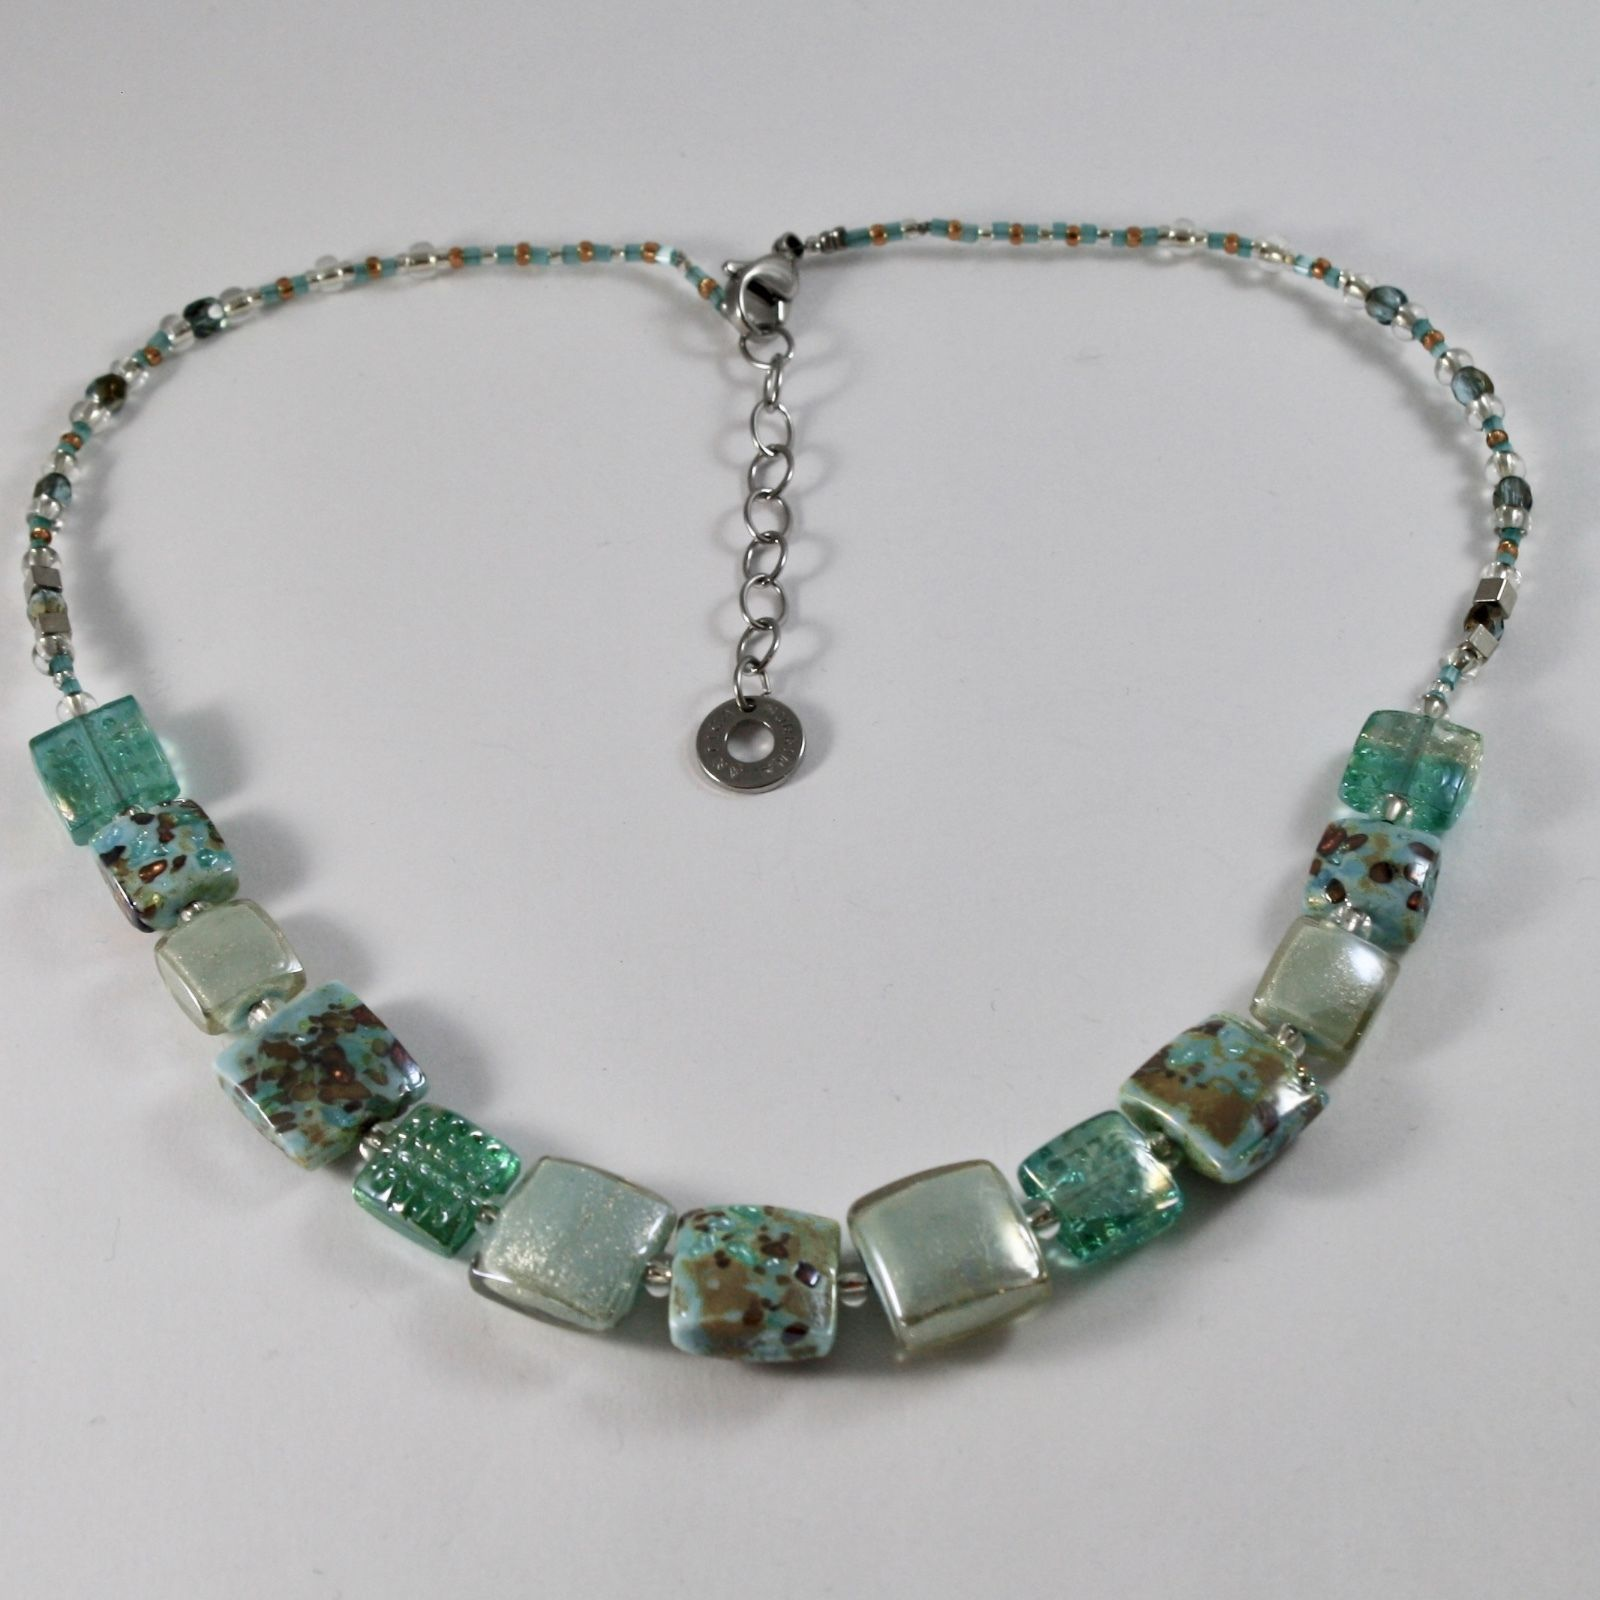 ANTICA MURRINA VENEZIA NECKLACE WITH MULTICOLOR MURANO GLASS SQUARES, GREEN